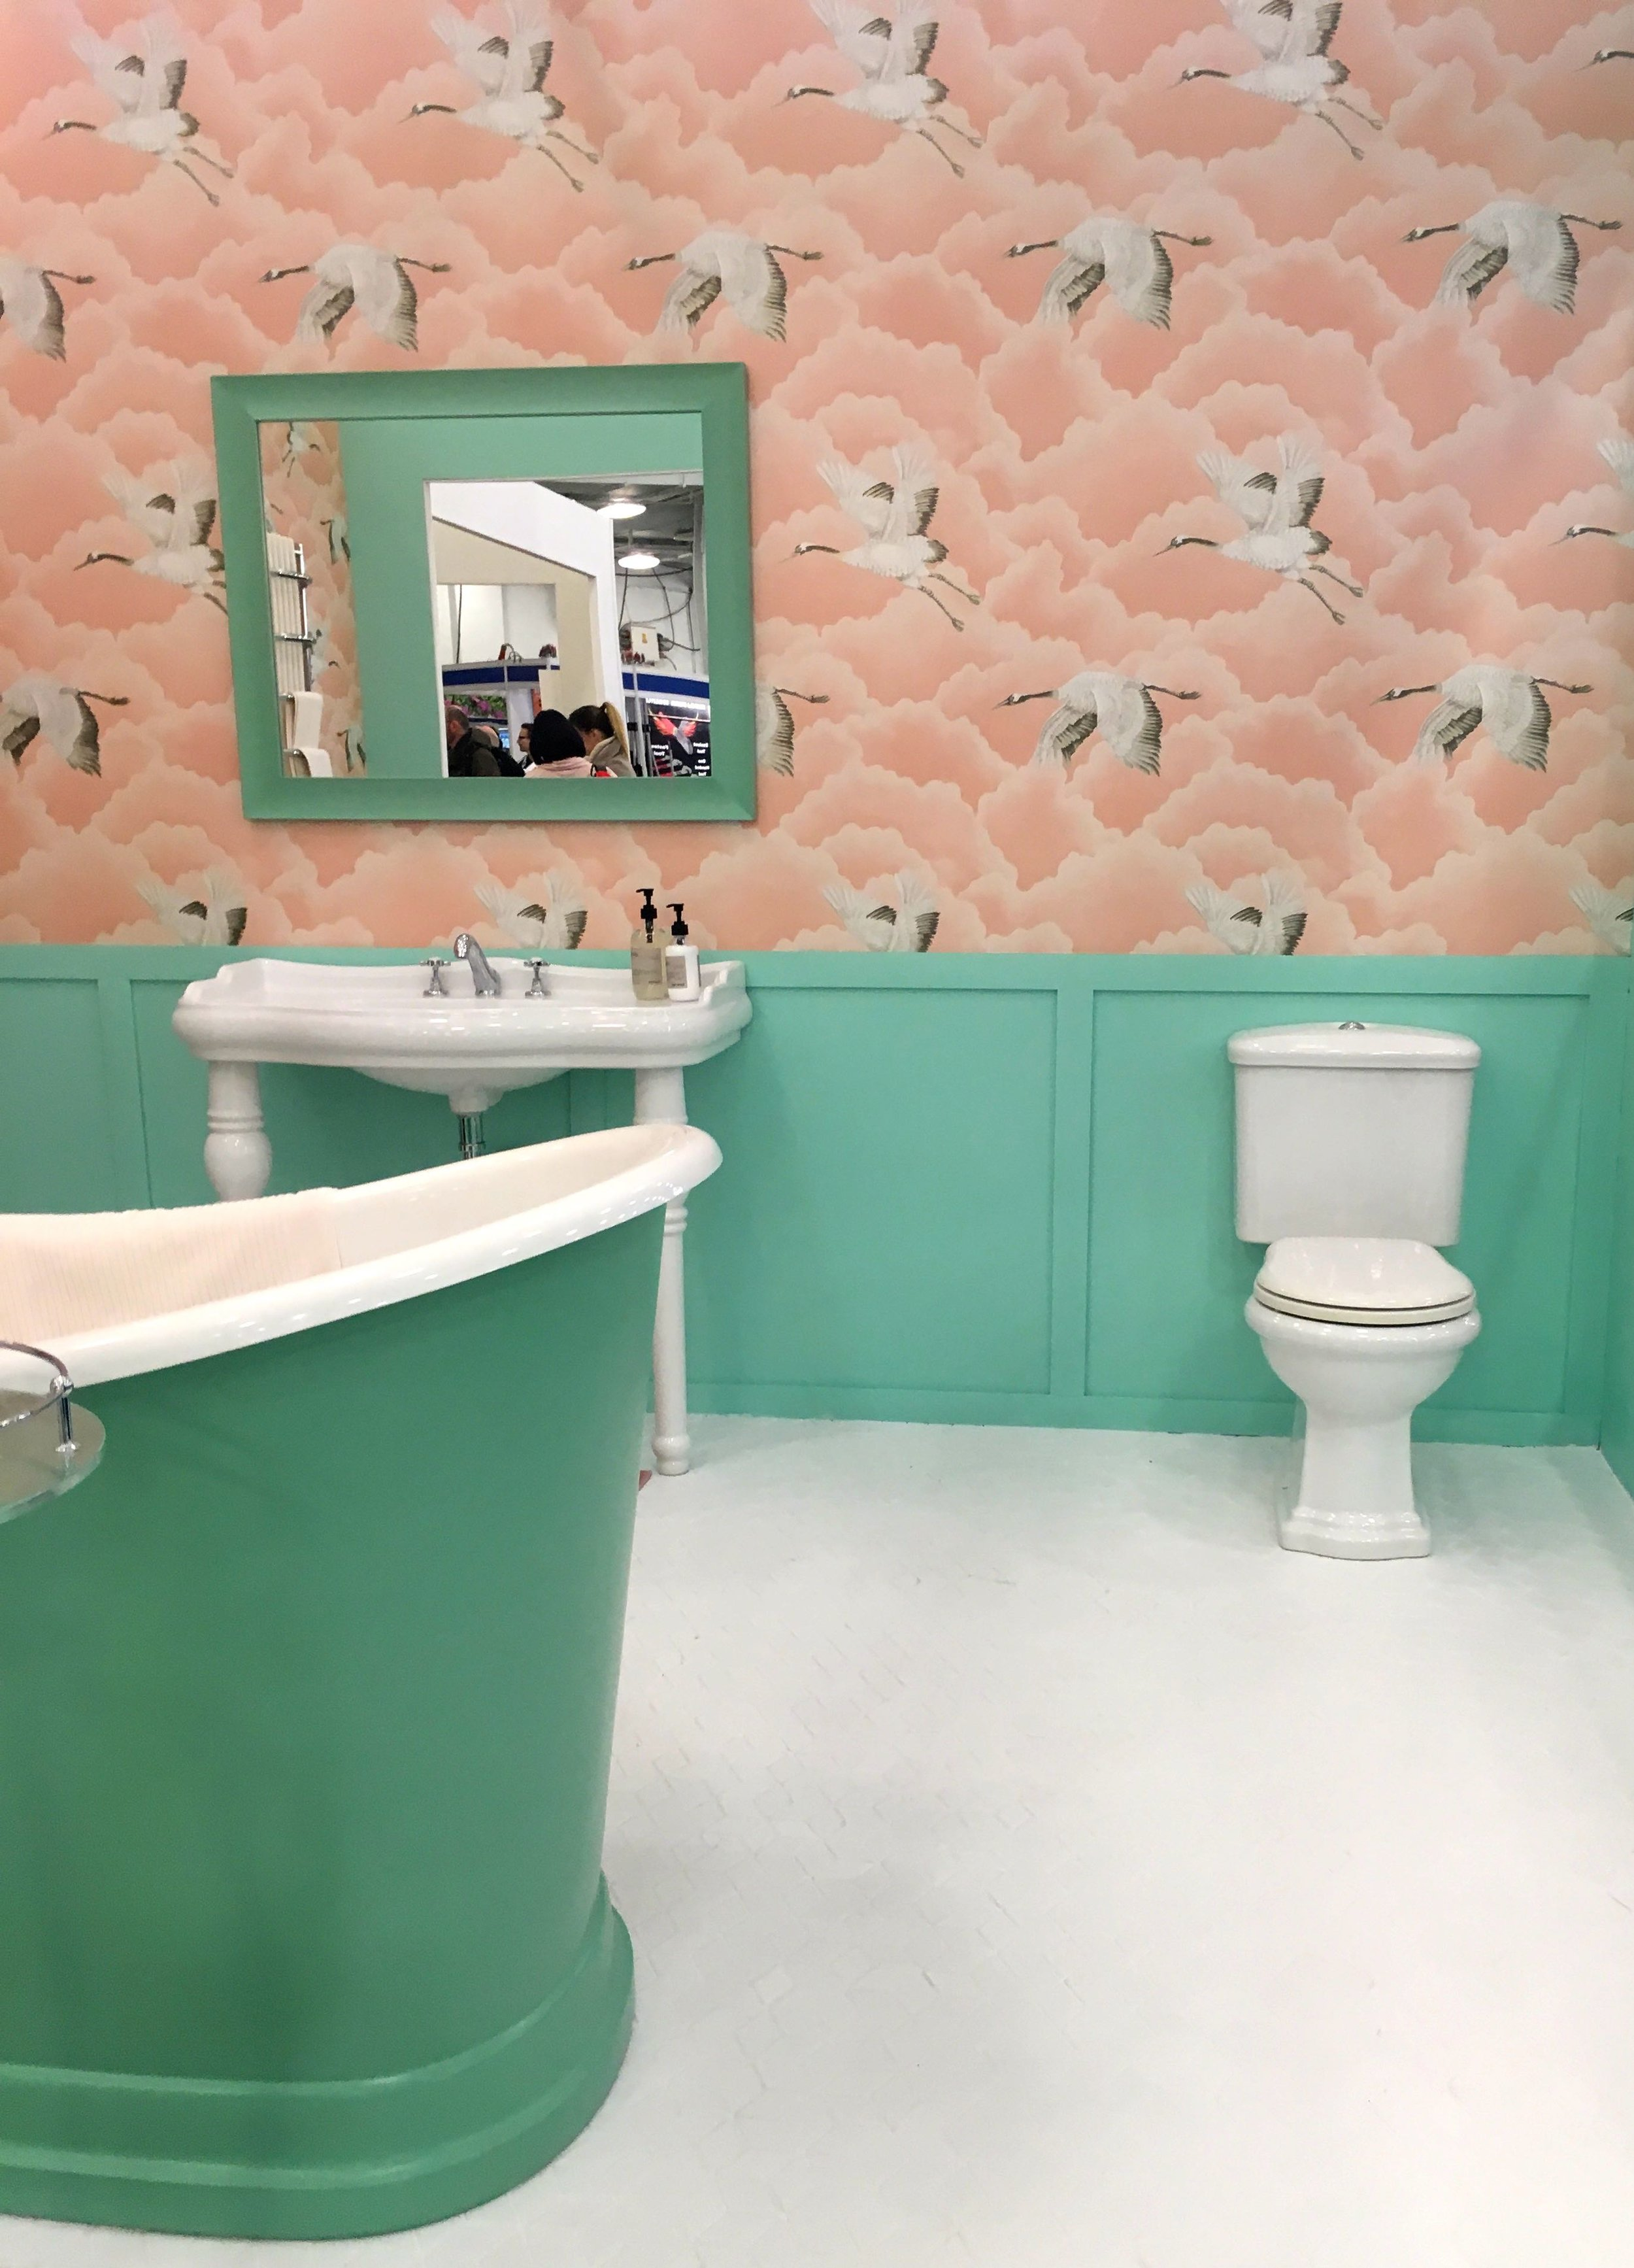 Pinks and greens in a Miami style at the Ideal HOme Show